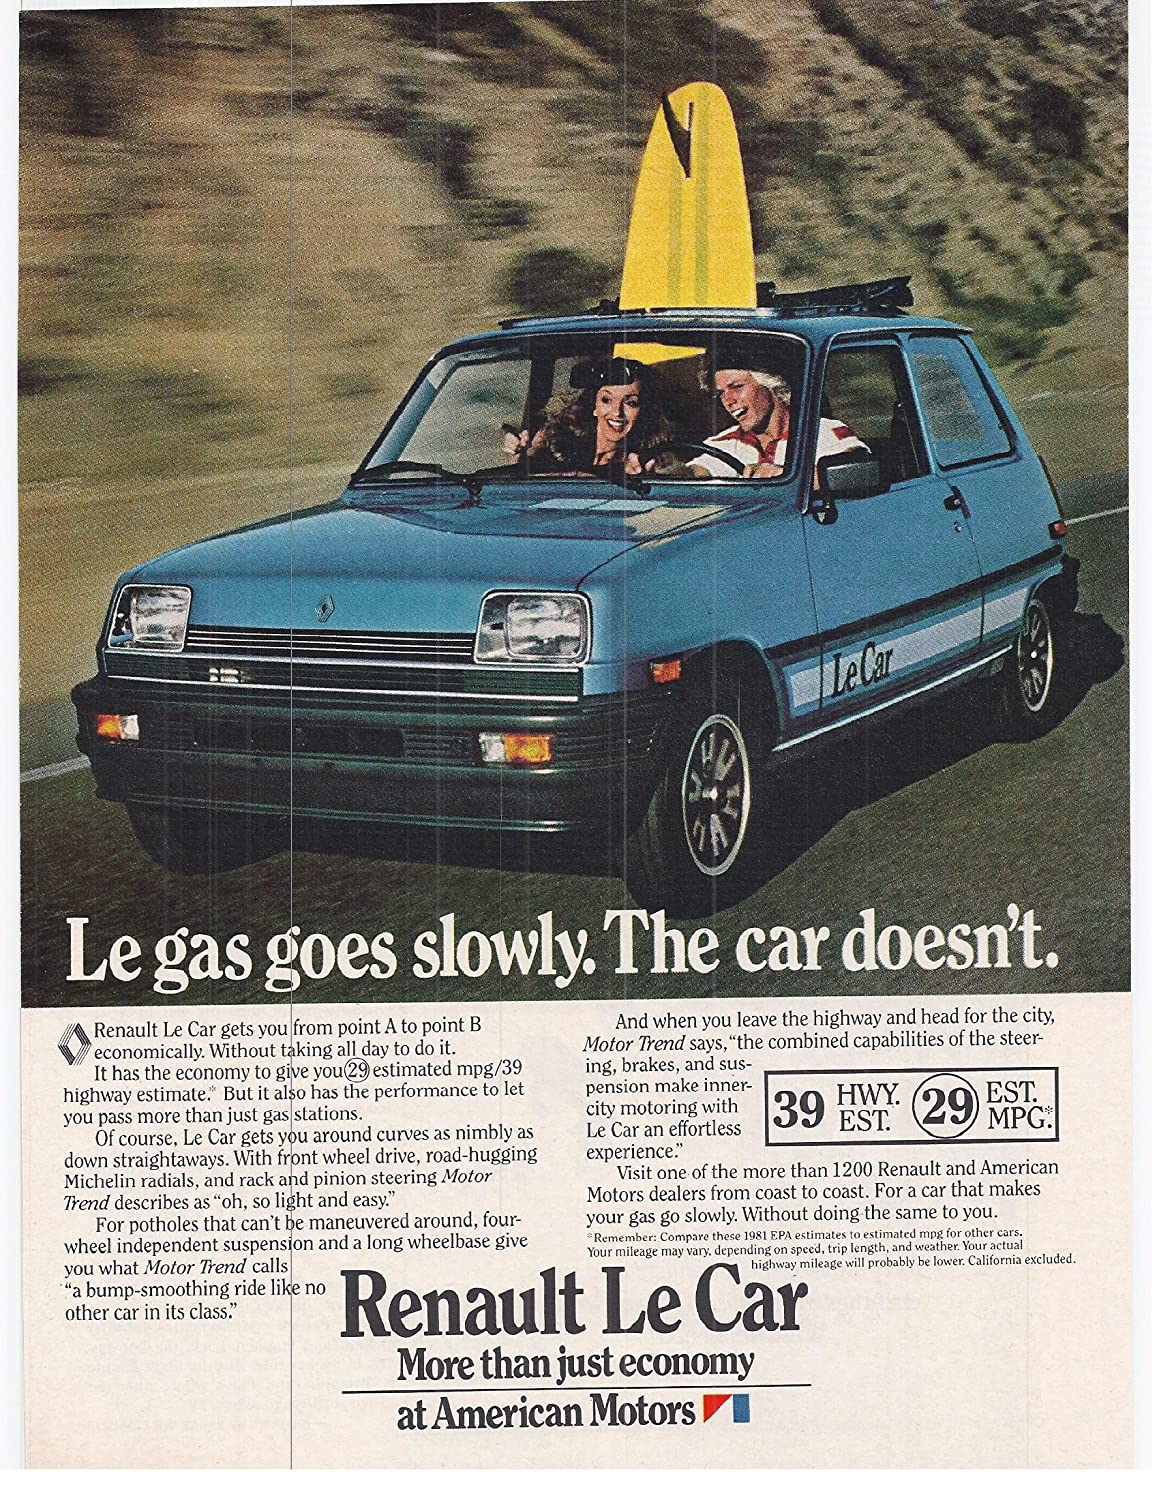 Amazon.com: 1981 Vintage Magazine Advertisement Renault Le Car: Posters & Prints